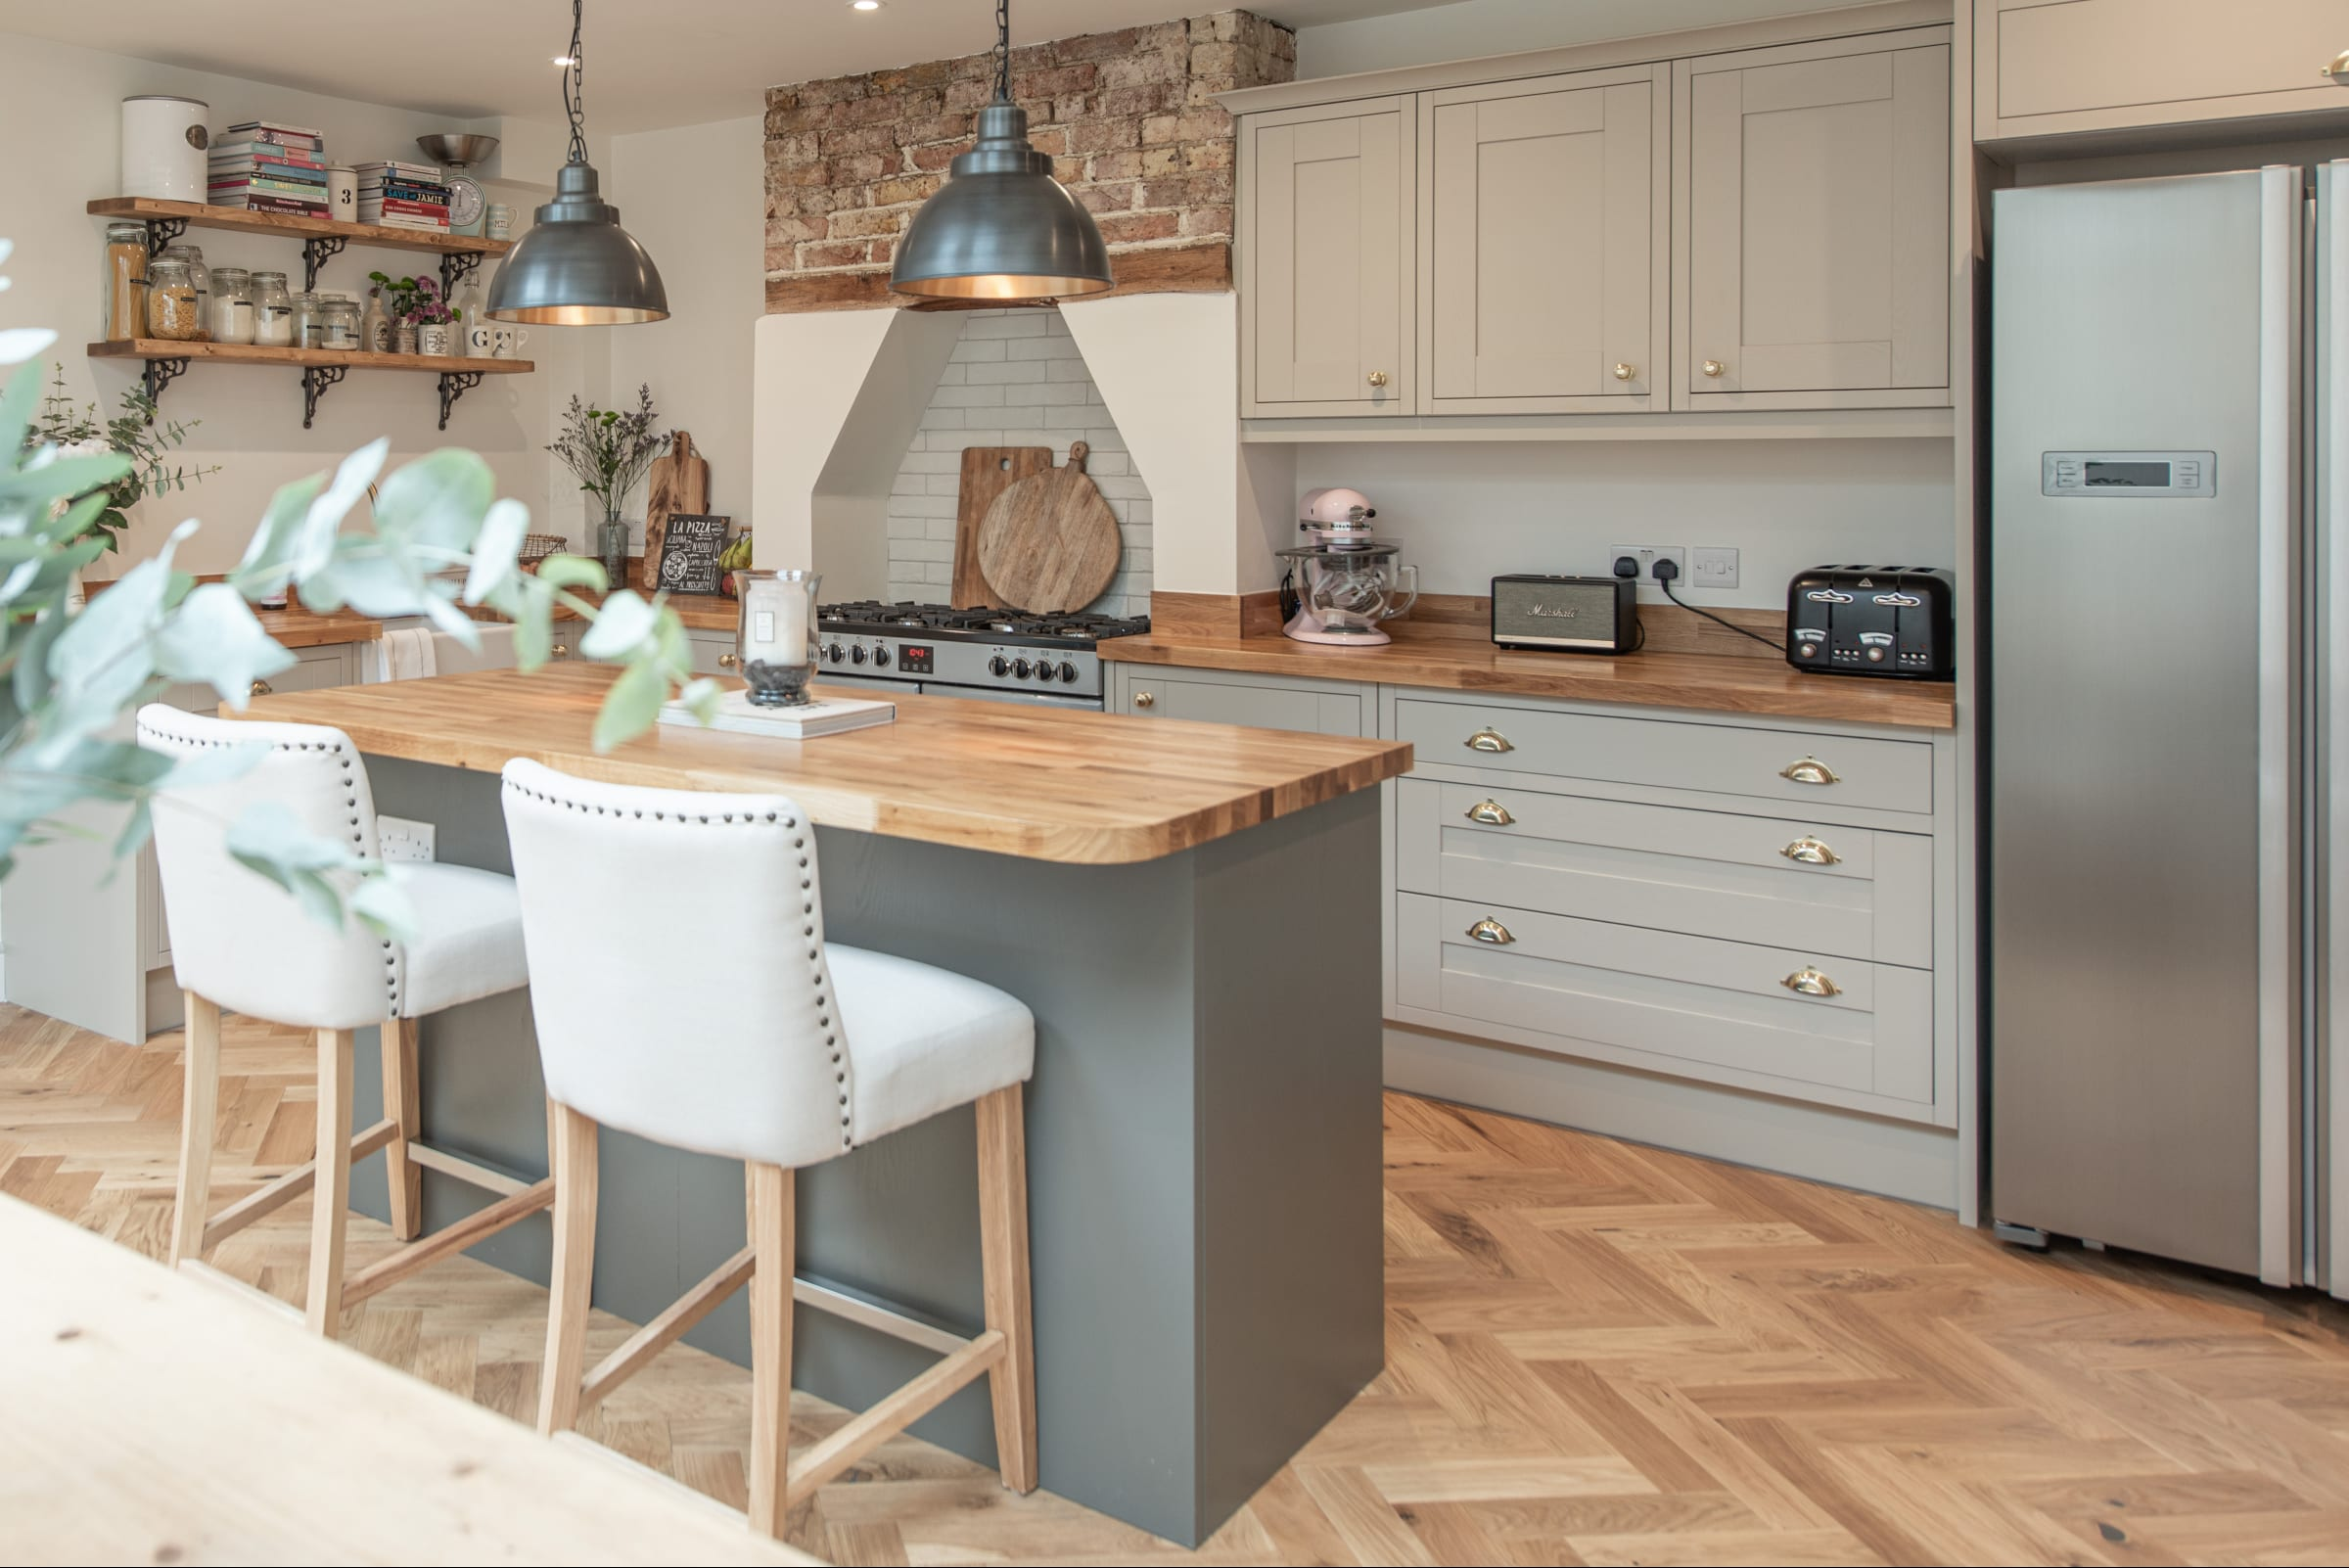 farnborough kitchen with herringbone wood floors